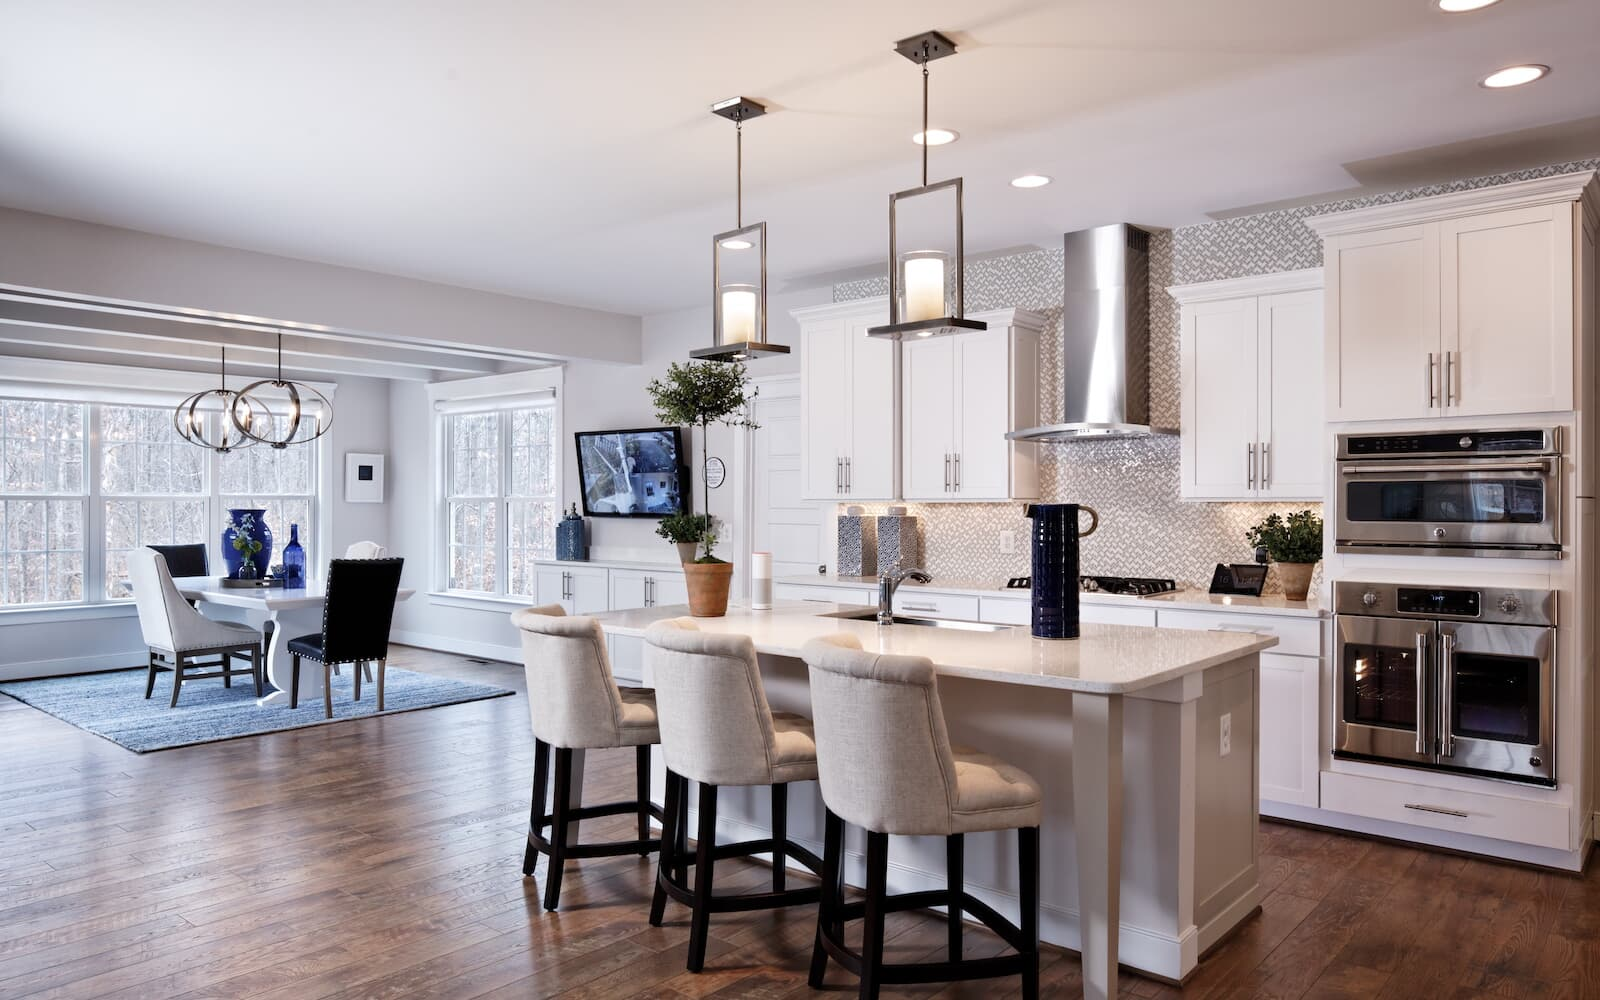 Kensington-kitchen-single-family-home-leesburg-va-waterford-manor-brookfield-residential